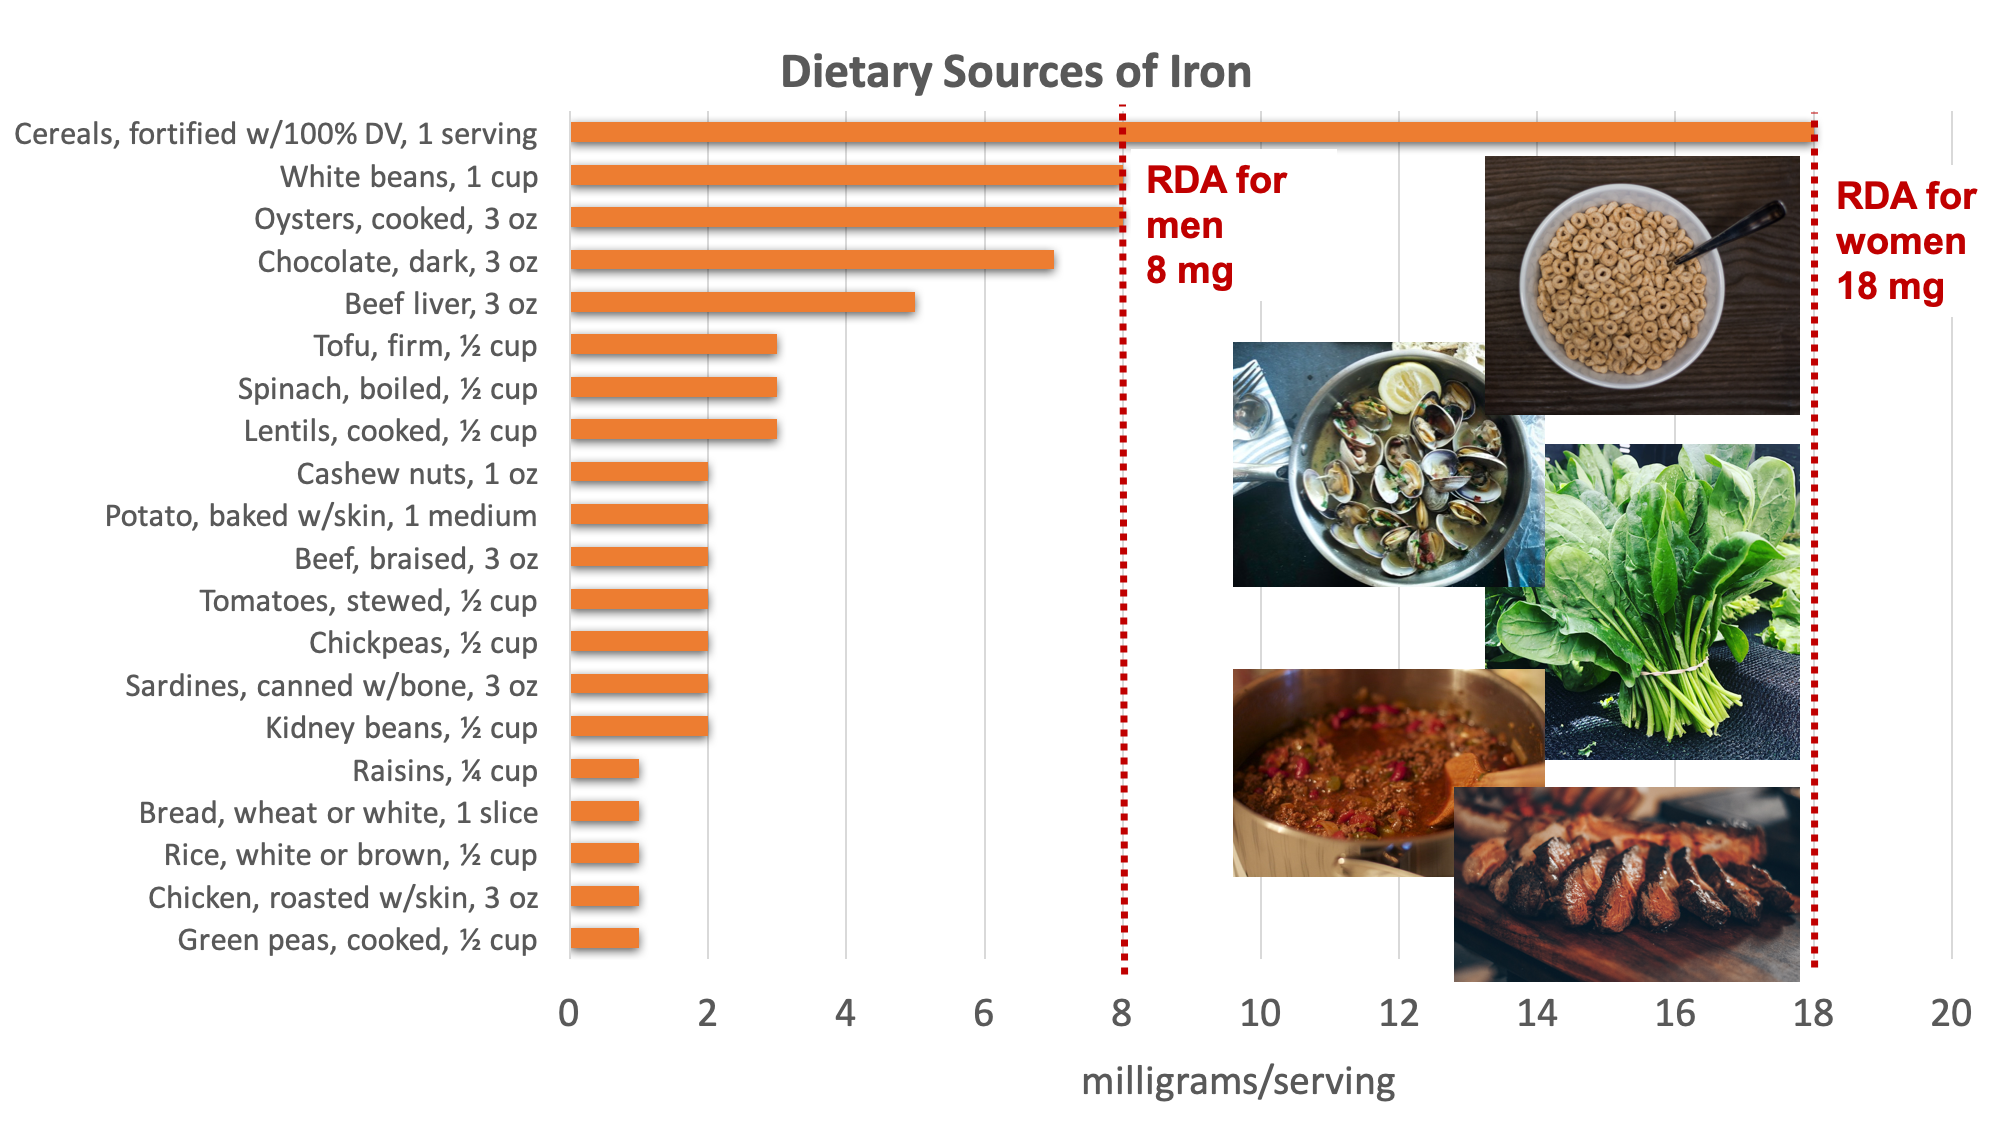 Bar graph showing dietary sources of iron compared with the RDA for adult women of 18 mg and for men of 8 mg. Top sources include fortified cereals, legumes, oysters, chocolate, beef liver, tofu, spinach, nuts, potato, tomatoes, and sardines. Sources pictured include cereal, oysters, spinach, chili with beans and beef, and steak.